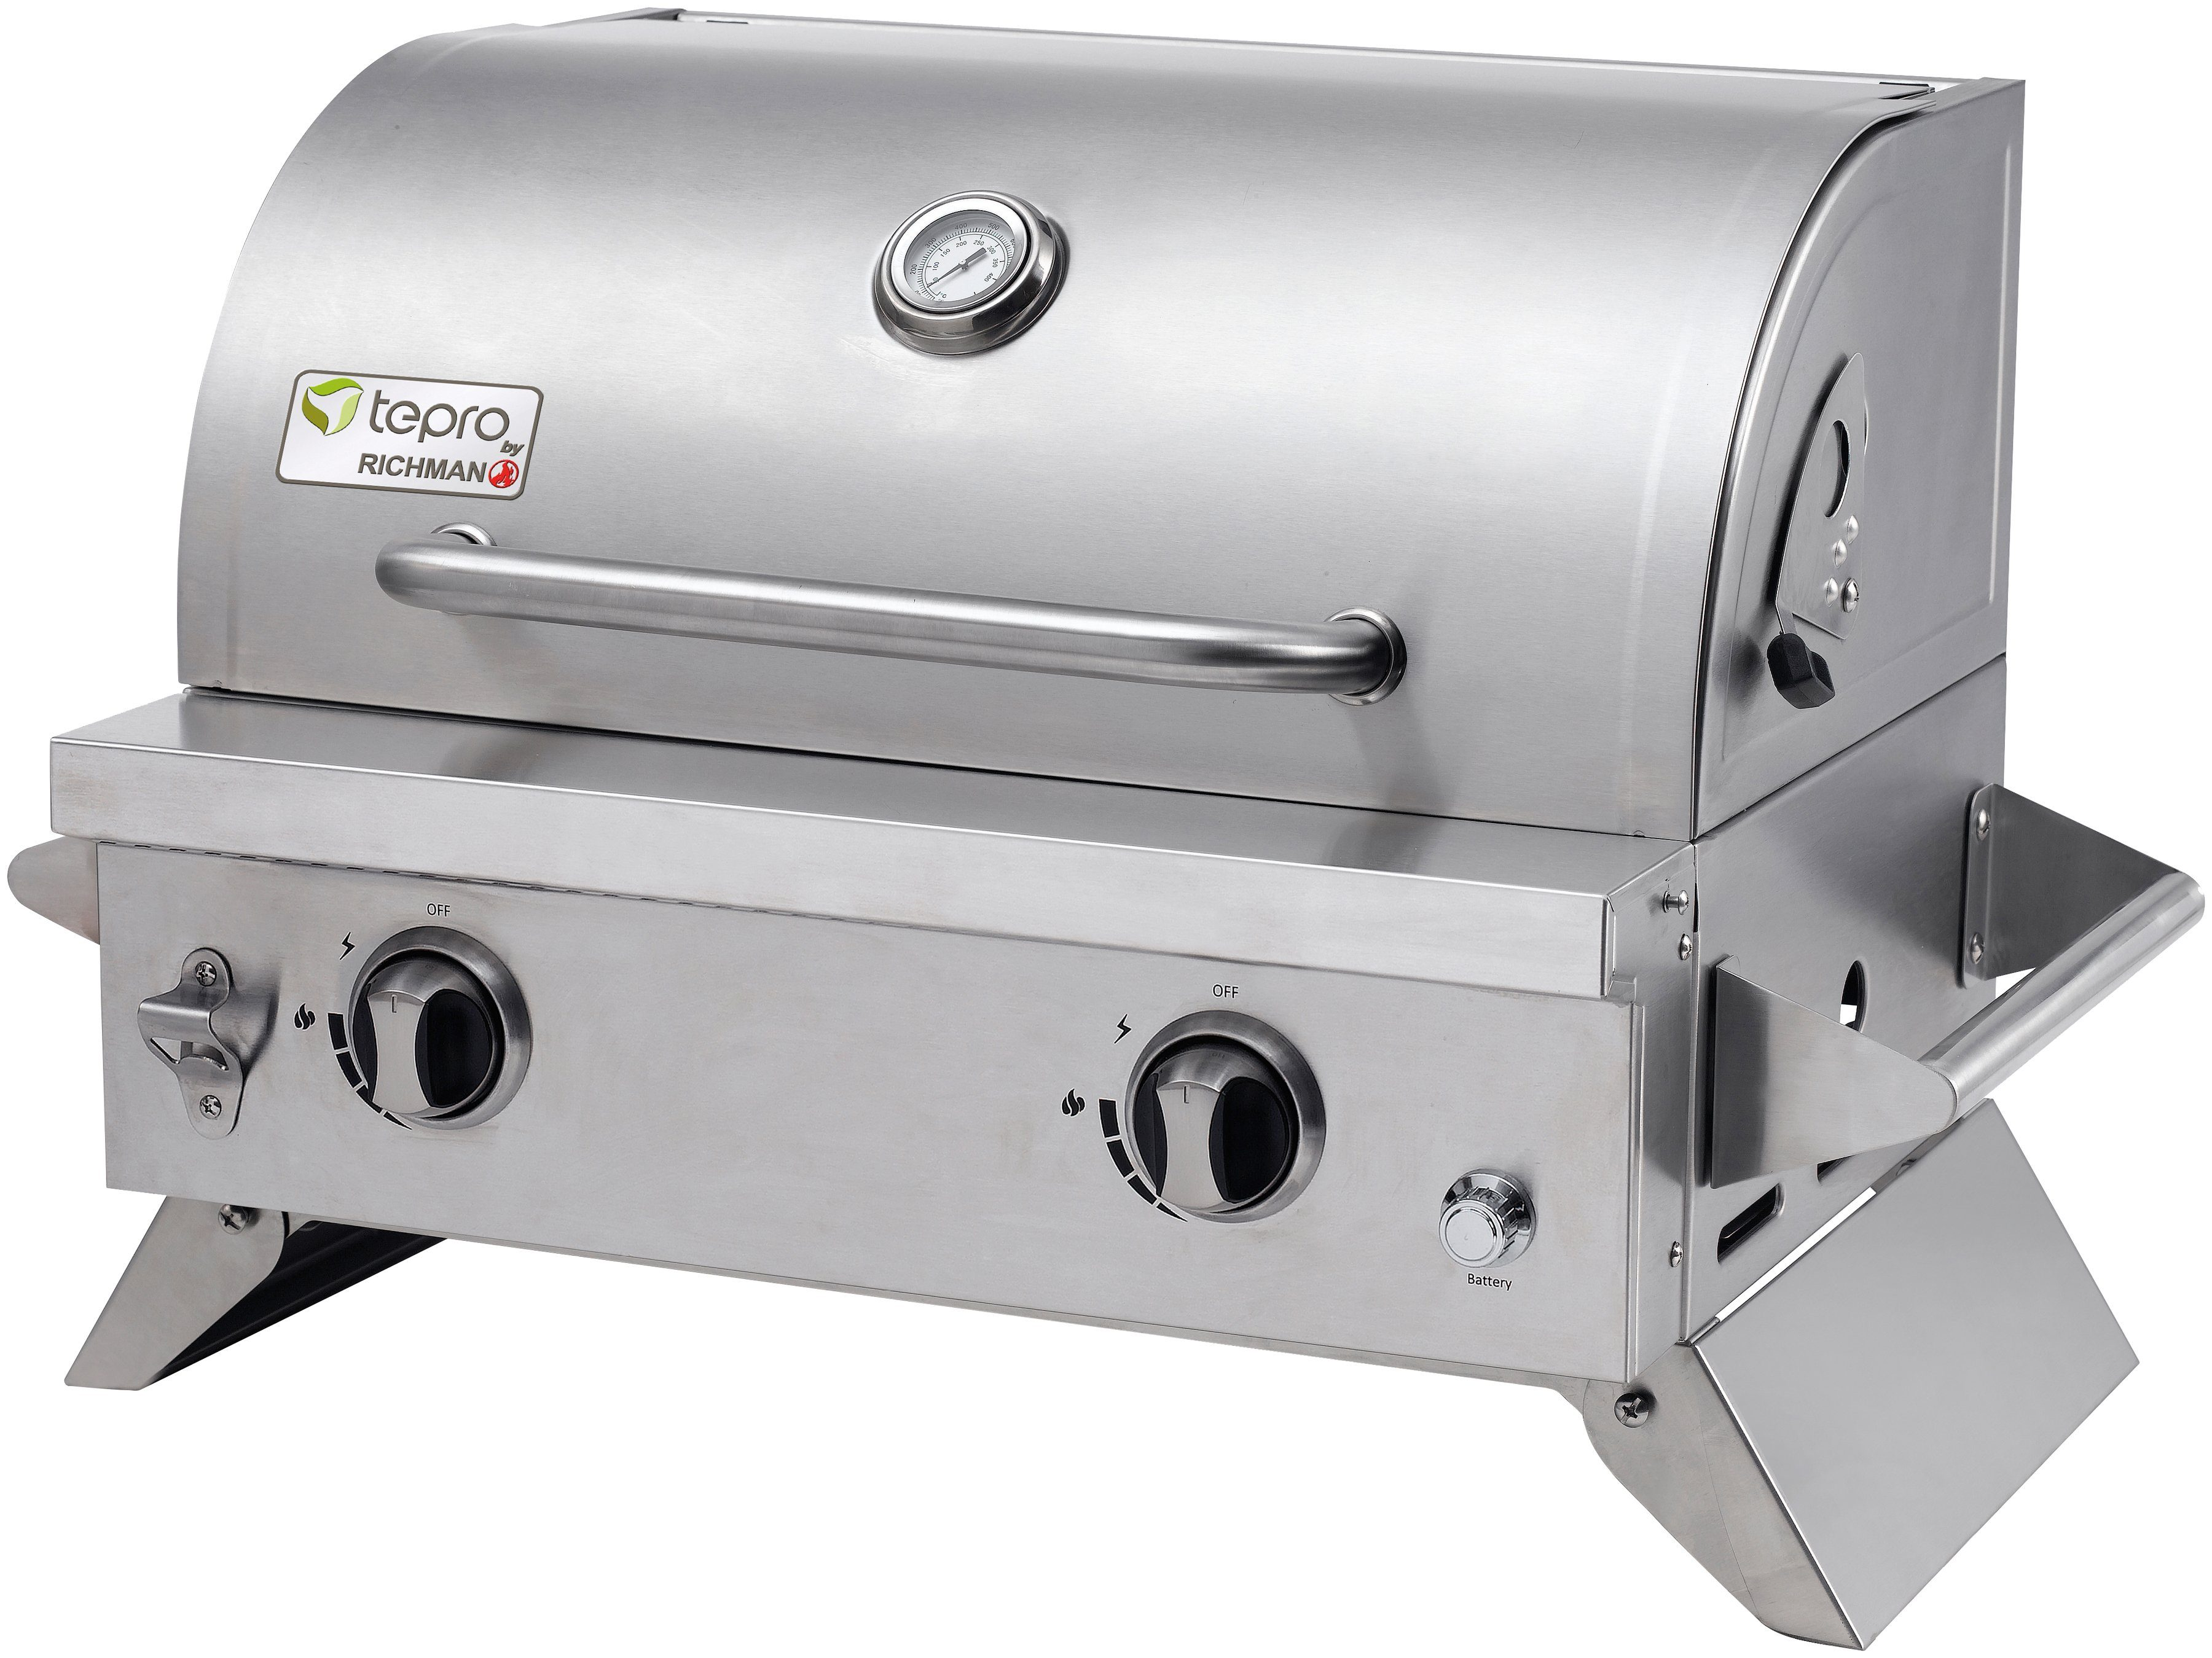 Tepro Grill Smoker Holzkohlegrill Milwaukee : Barbecue grillwagen gartengrill holzkohlegrill bbq holzkohle grill